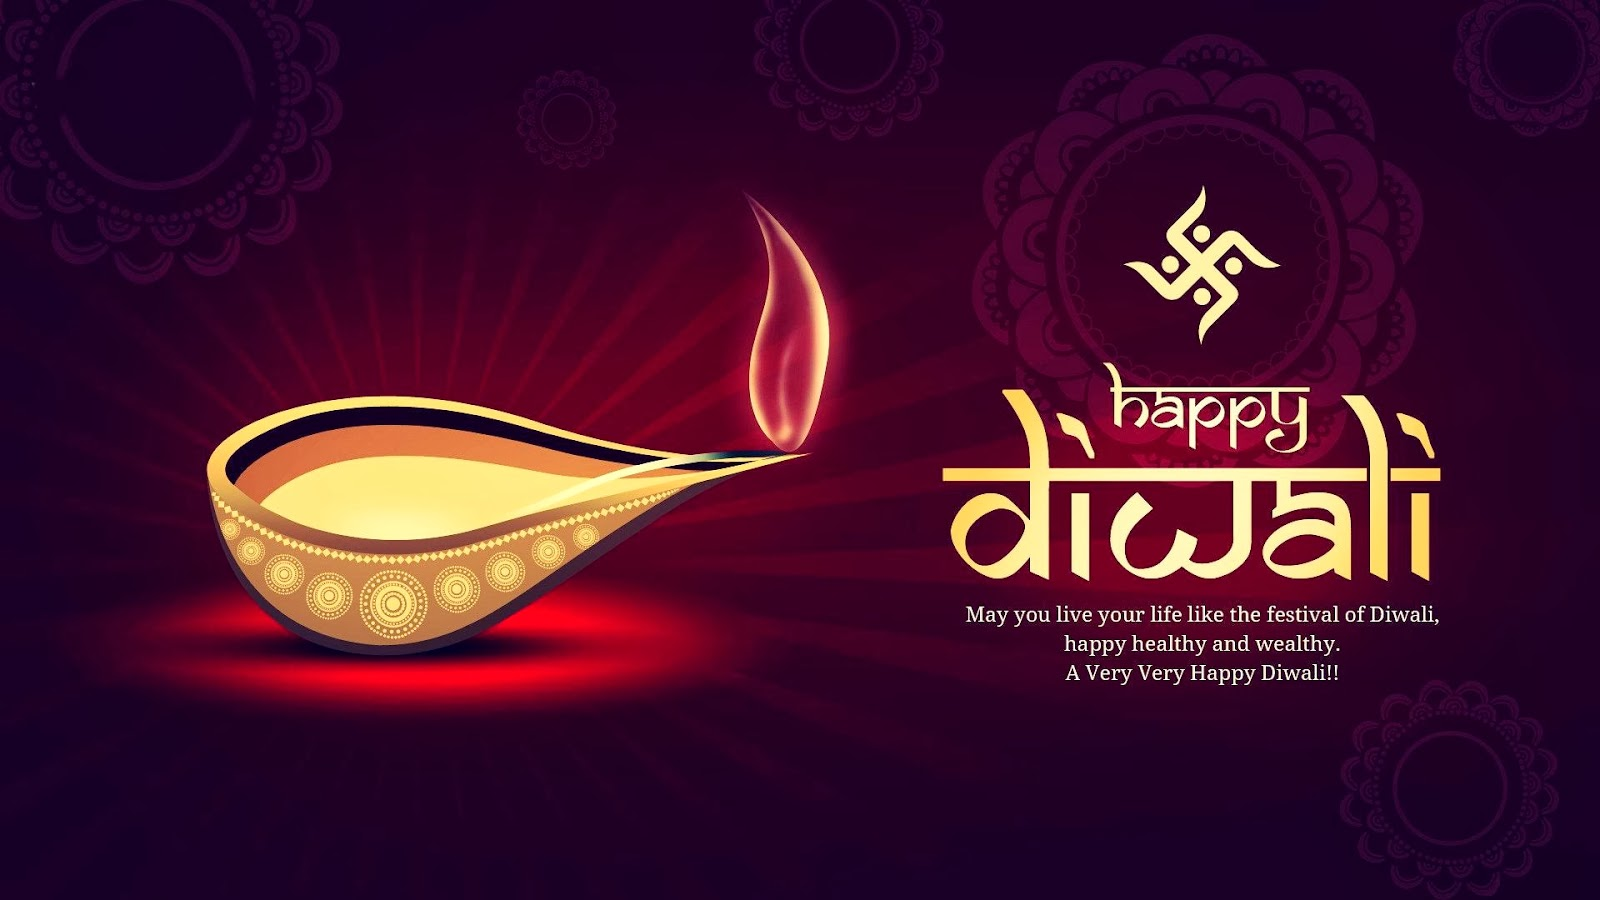 Happy Holiday Quotes Wallpapers Top Best Happy Diwali Wallpapers Desktop Mega Collection